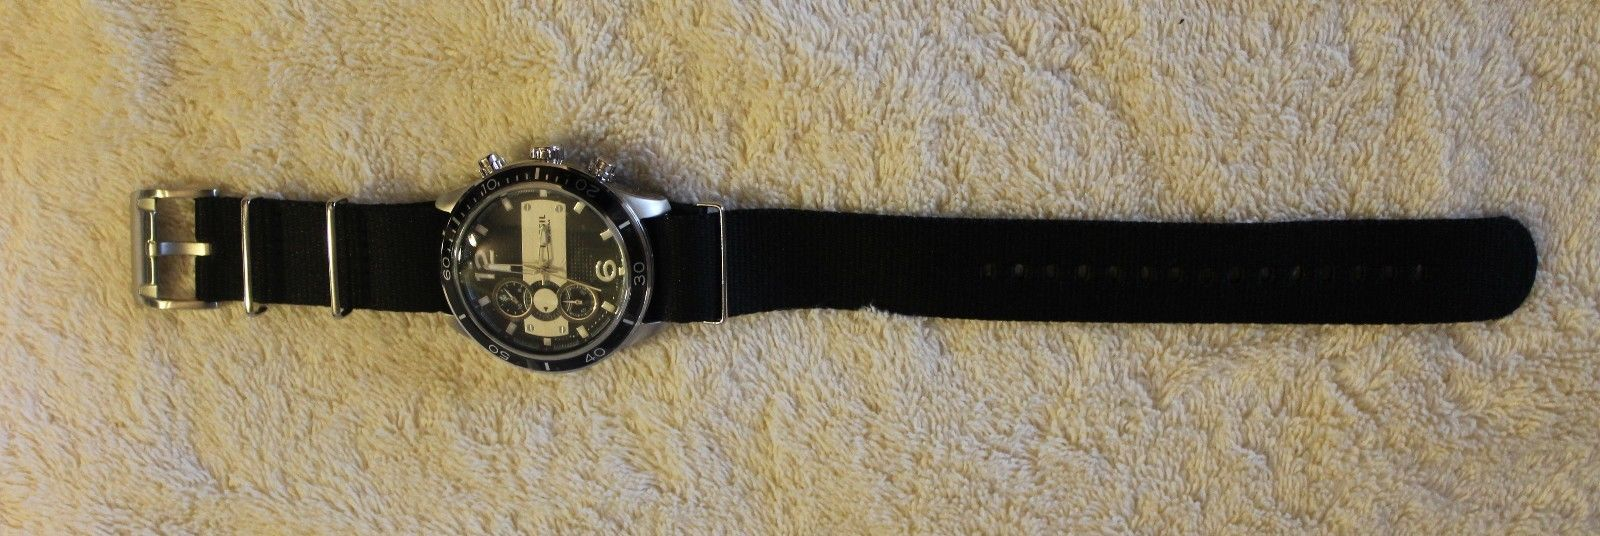 New FOSSIL Watch Black Band Silver Tone Men's Chronograph